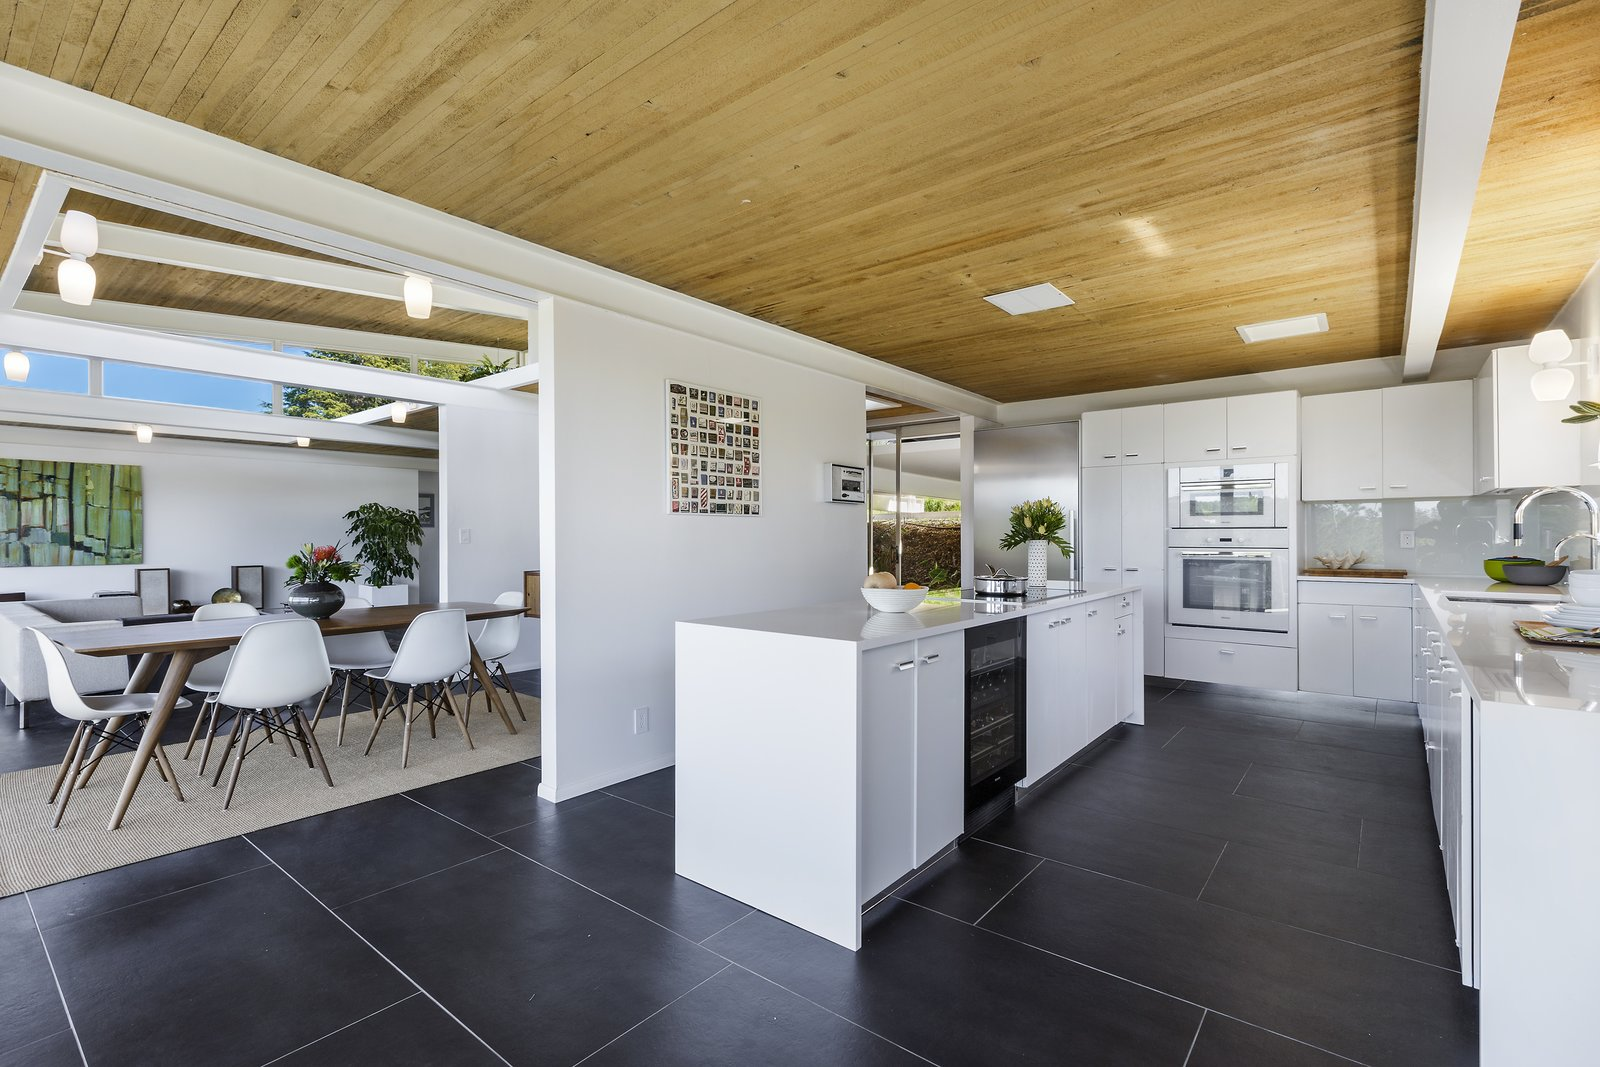 Kitchen, Wall Oven, White, Wall, Refrigerator, Undermount, Cooktops, and Beverage Center  Kitchen Cooktops Undermount Wall Oven Beverage Center Photos from Spend the Night in an Iconic Case Study House North of San Francisco